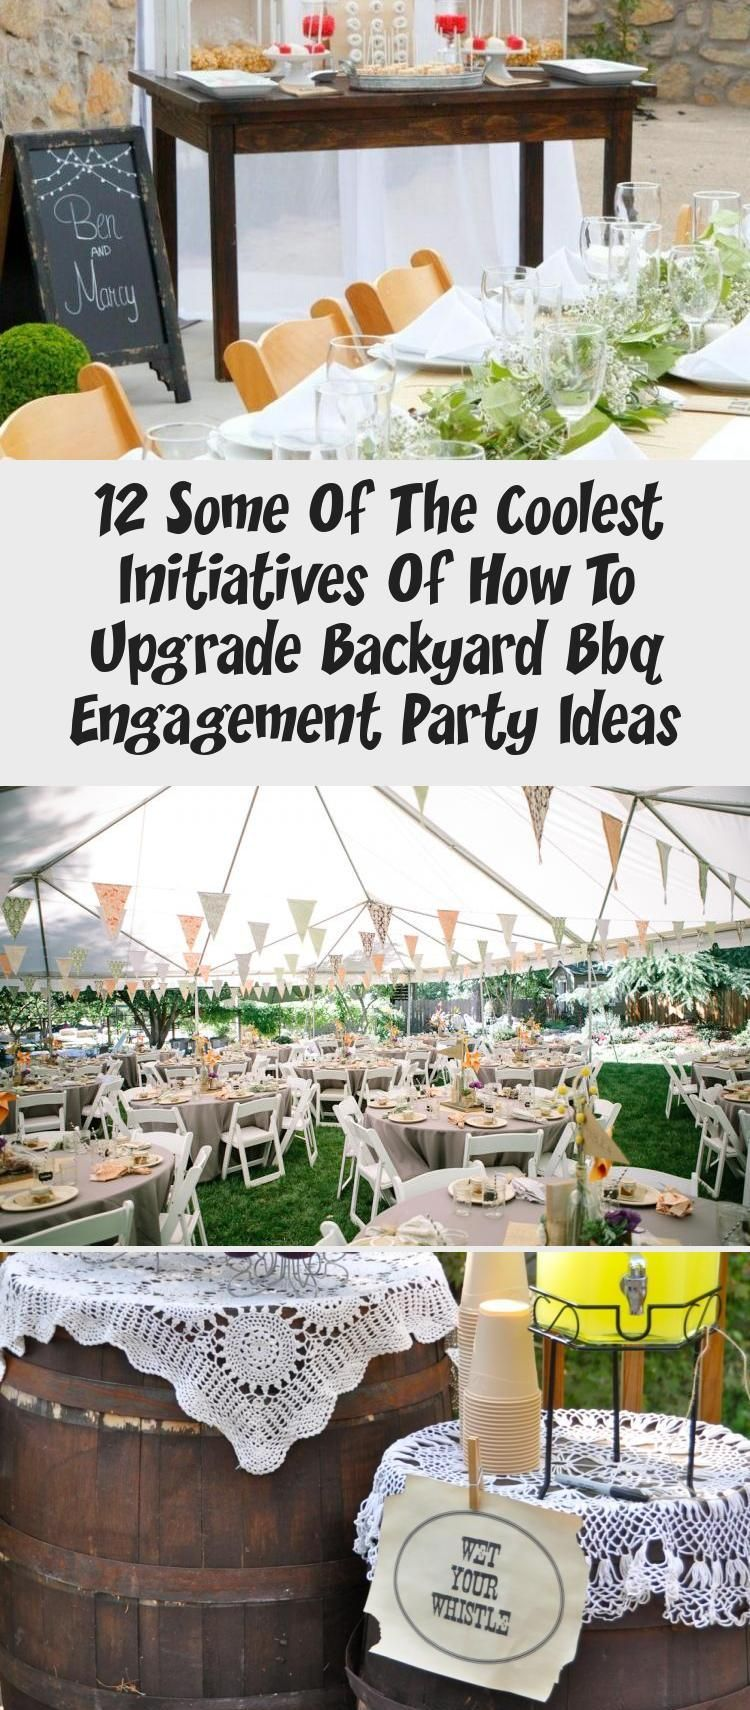 12 Some of the Coolest Initiatives of How to Upgrade Backyard Bbq Engagement Party Ideas #Homedecorlove #bohoweddingIdeas #bohoweddingVenues #bohoweddingInvites #bohoweddingFavors #bohoweddingFrisur #engagementpartyideasdecorations 12 Some of the Coolest Initiatives of How to Upgrade Backyard Bbq Engagement Party Ideas #Homedecorlove #bohoweddingIdeas #bohoweddingVenues #bohoweddingInvites #bohoweddingFavors #bohoweddingFrisur